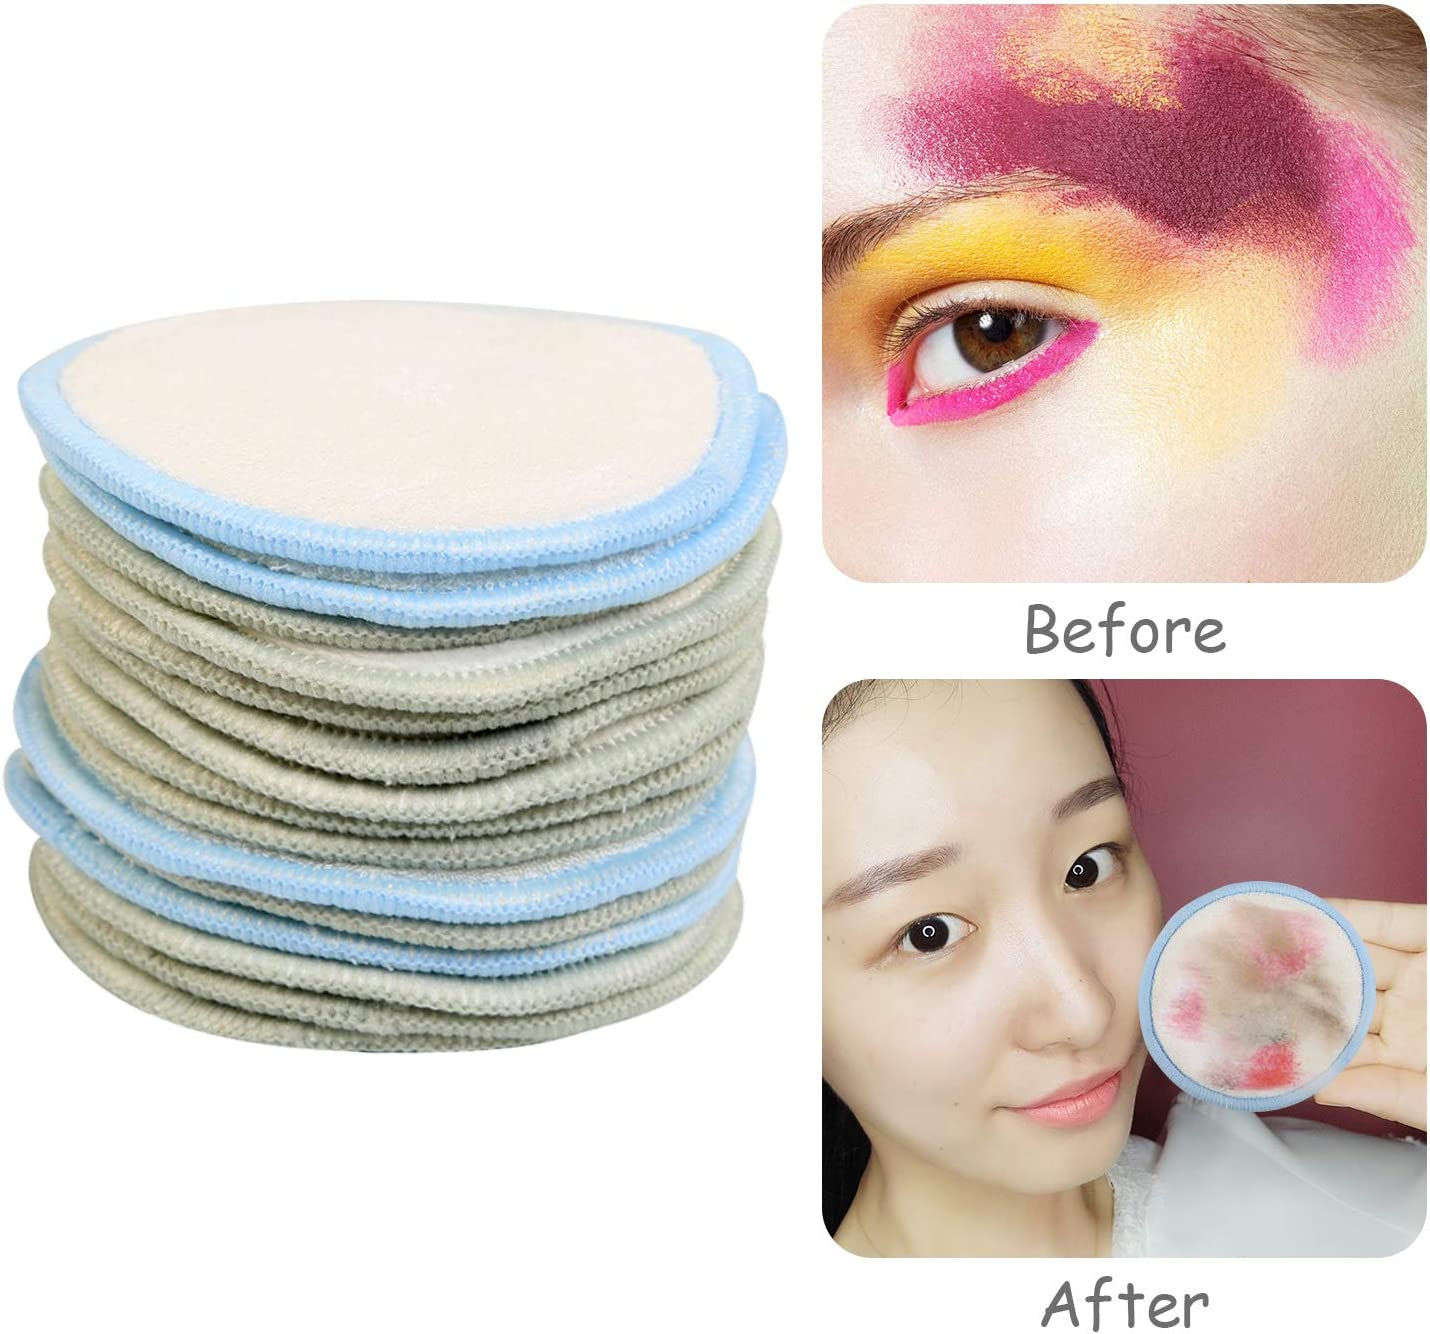 BelleStyle Reusable Make up Remover Pads Cotton Pads Face Washable and Eco-Friendly Bamboo Removal Pads for Make up Removal and Facial Cleaning Perfect For All Skin Types Zero Waste